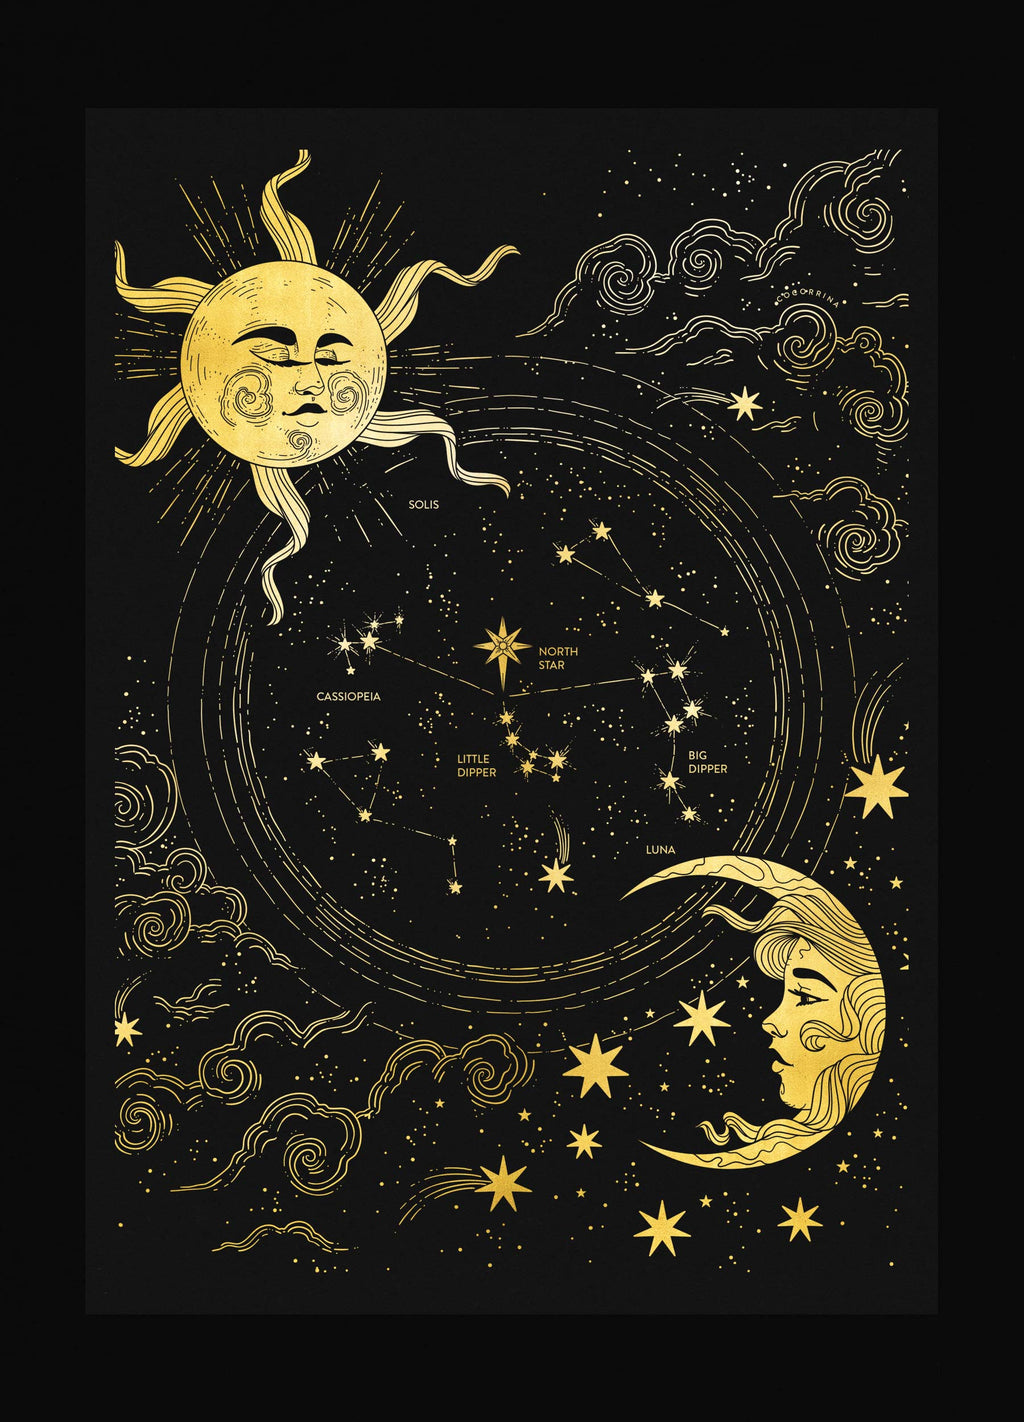 The North Star sky map gold foil art print on black paper by Cocorrina & Co